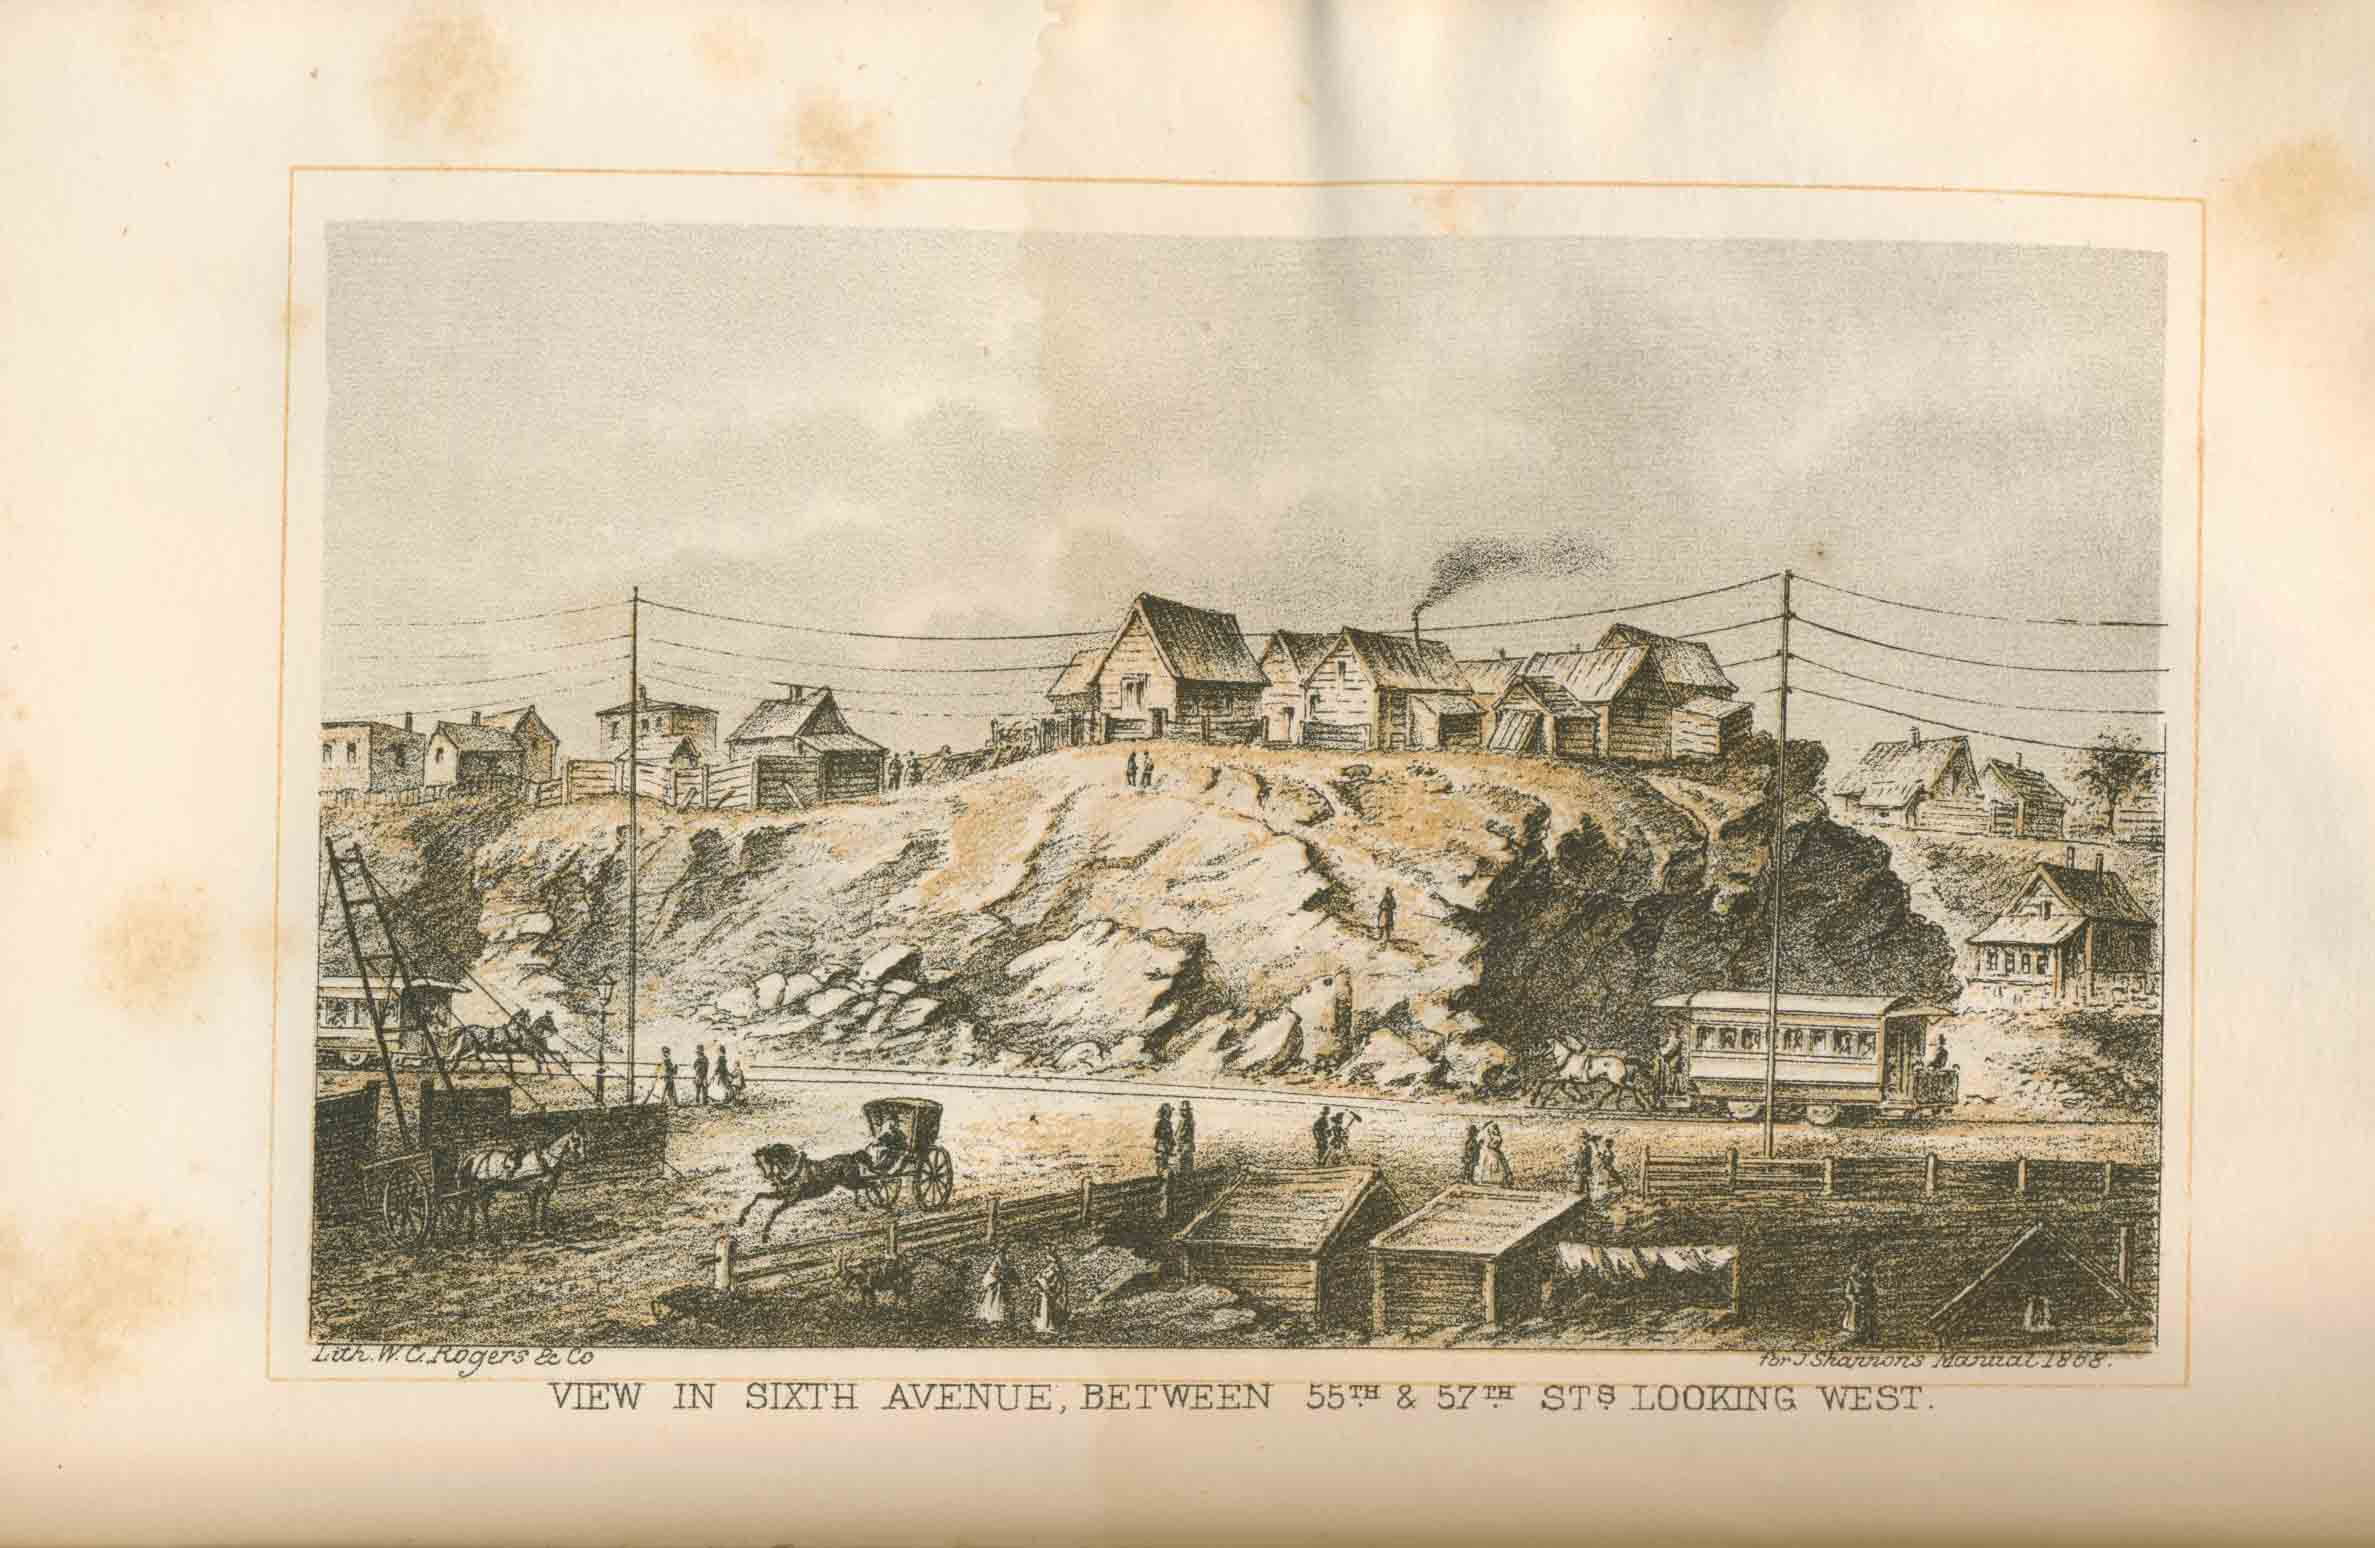 1868-View-in-6th-Avenue-Between-55th-and-57th-Streets-Looking-West-1868